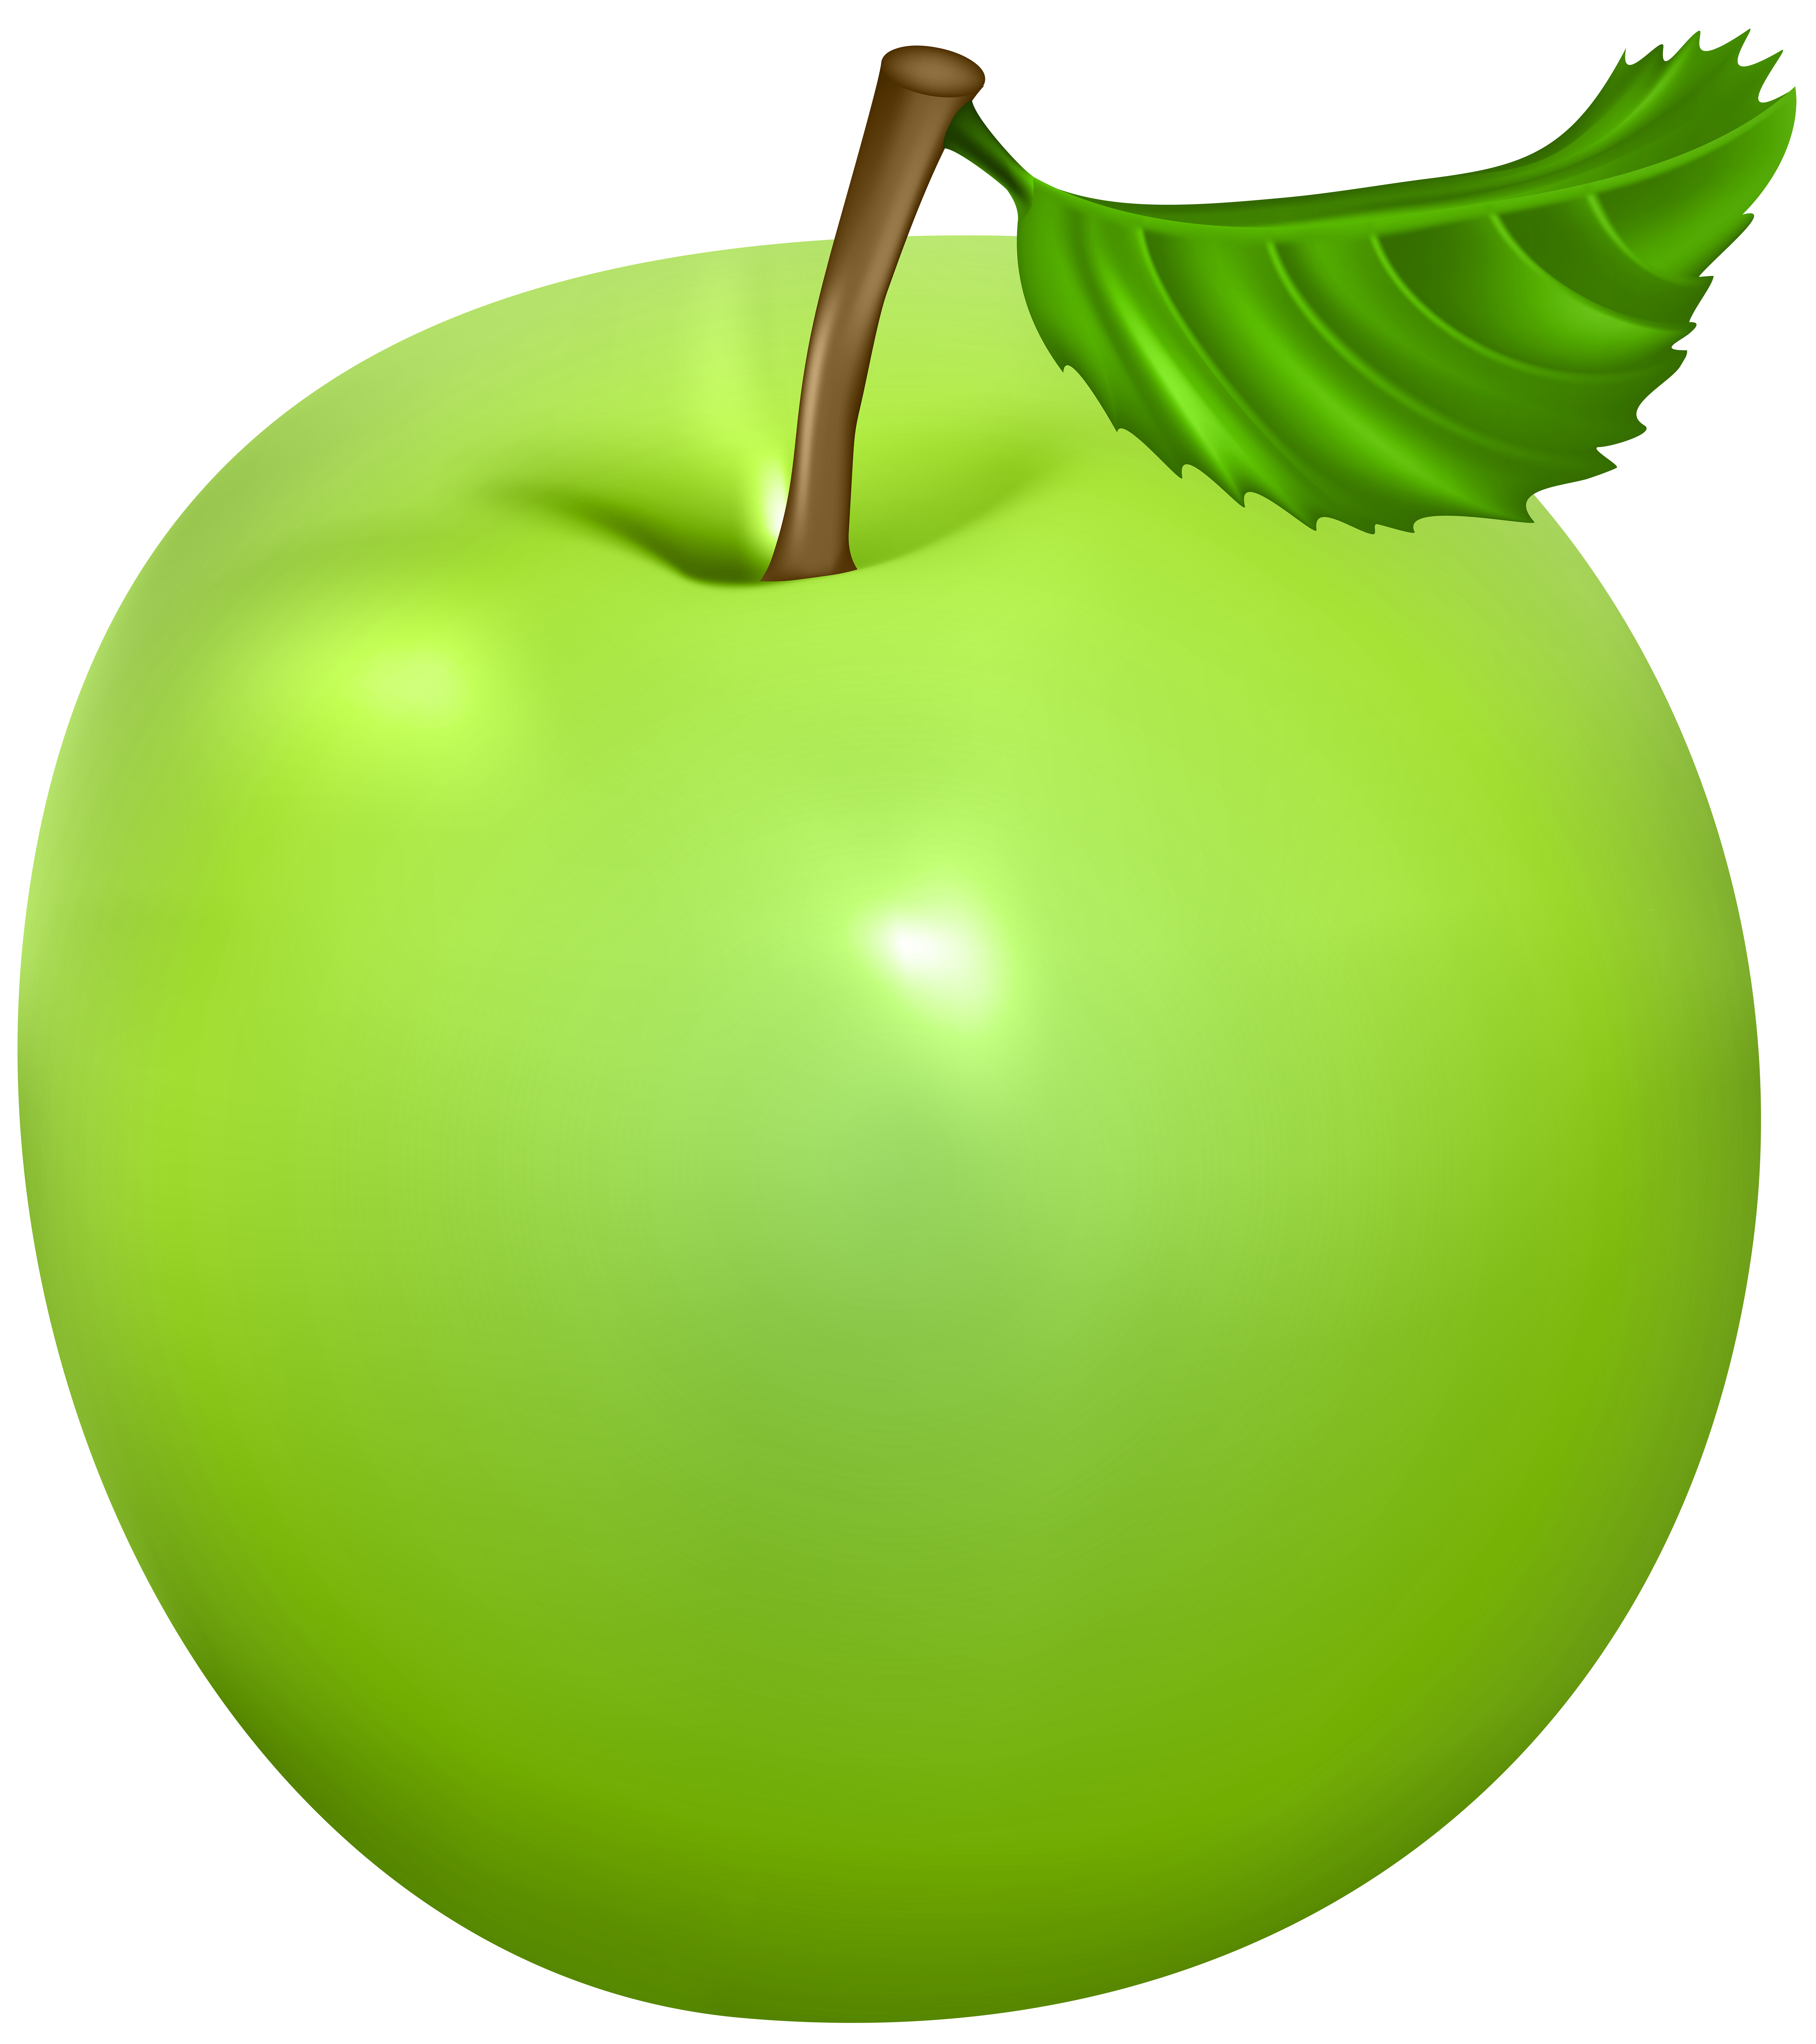 Apple hand clipart png library stock Green Apple PNG Clip Art Image - Best WEB Clipart png library stock